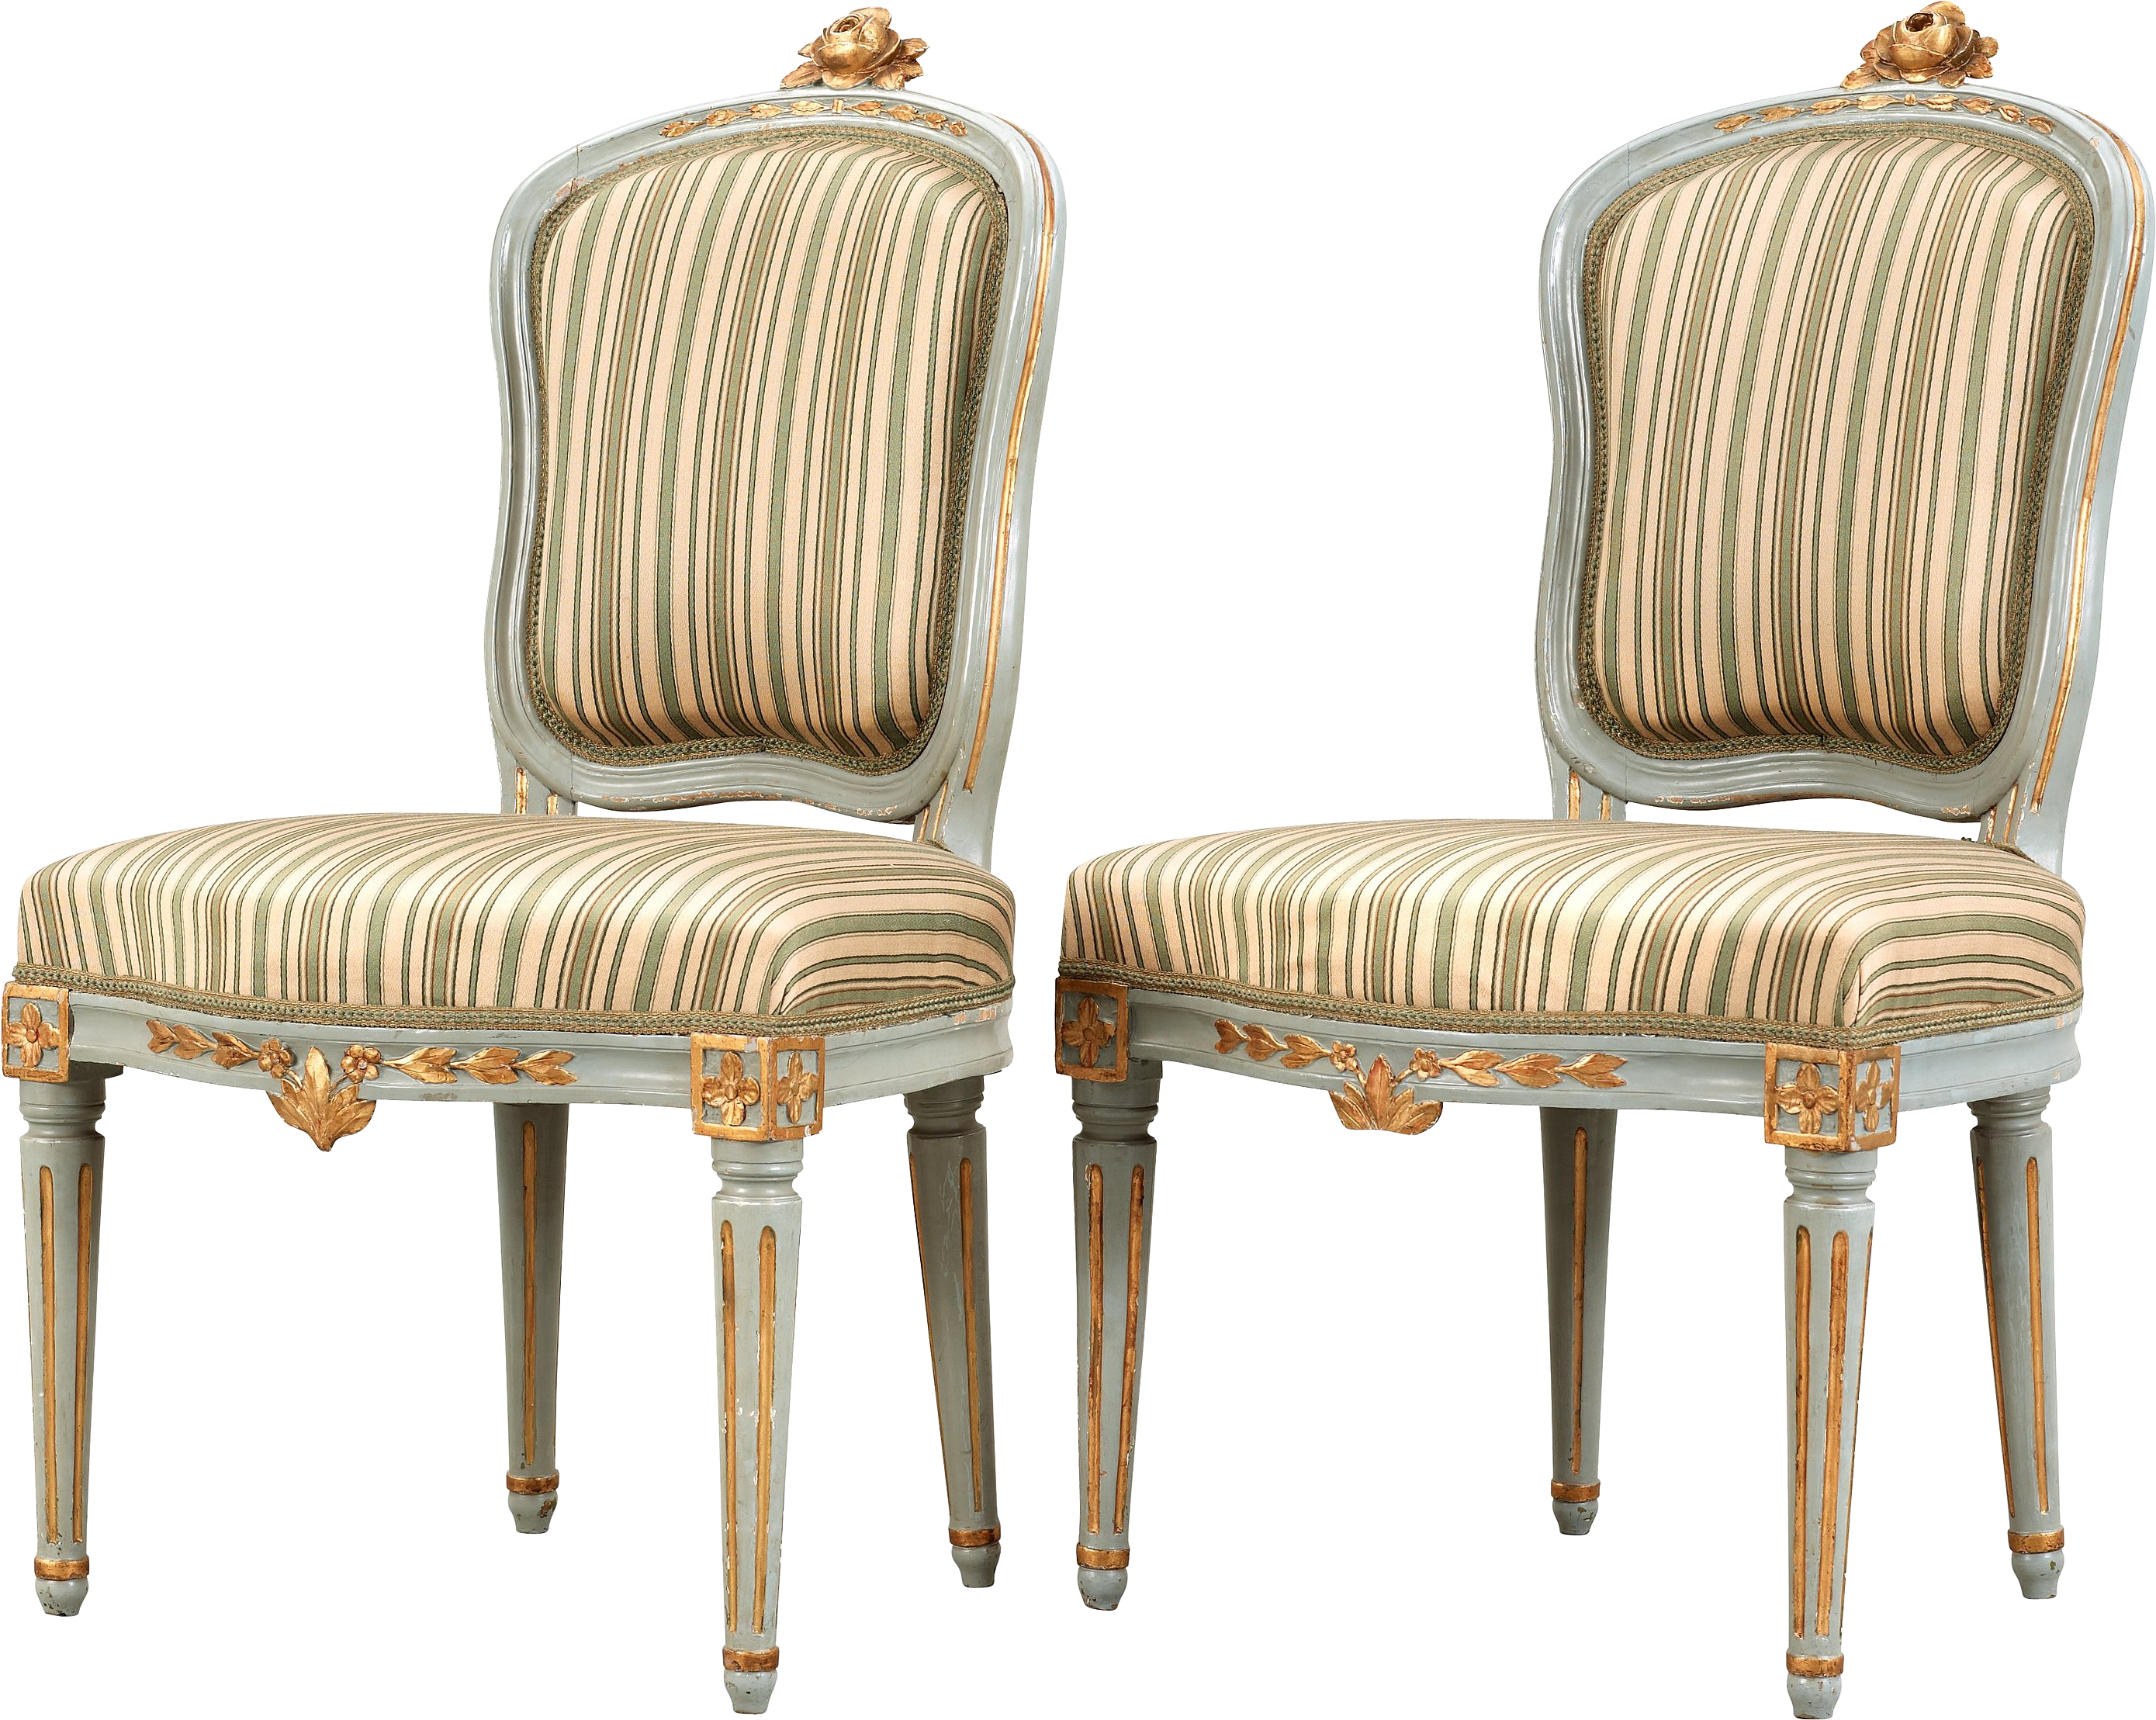 uploads chair chair PNG6846 24